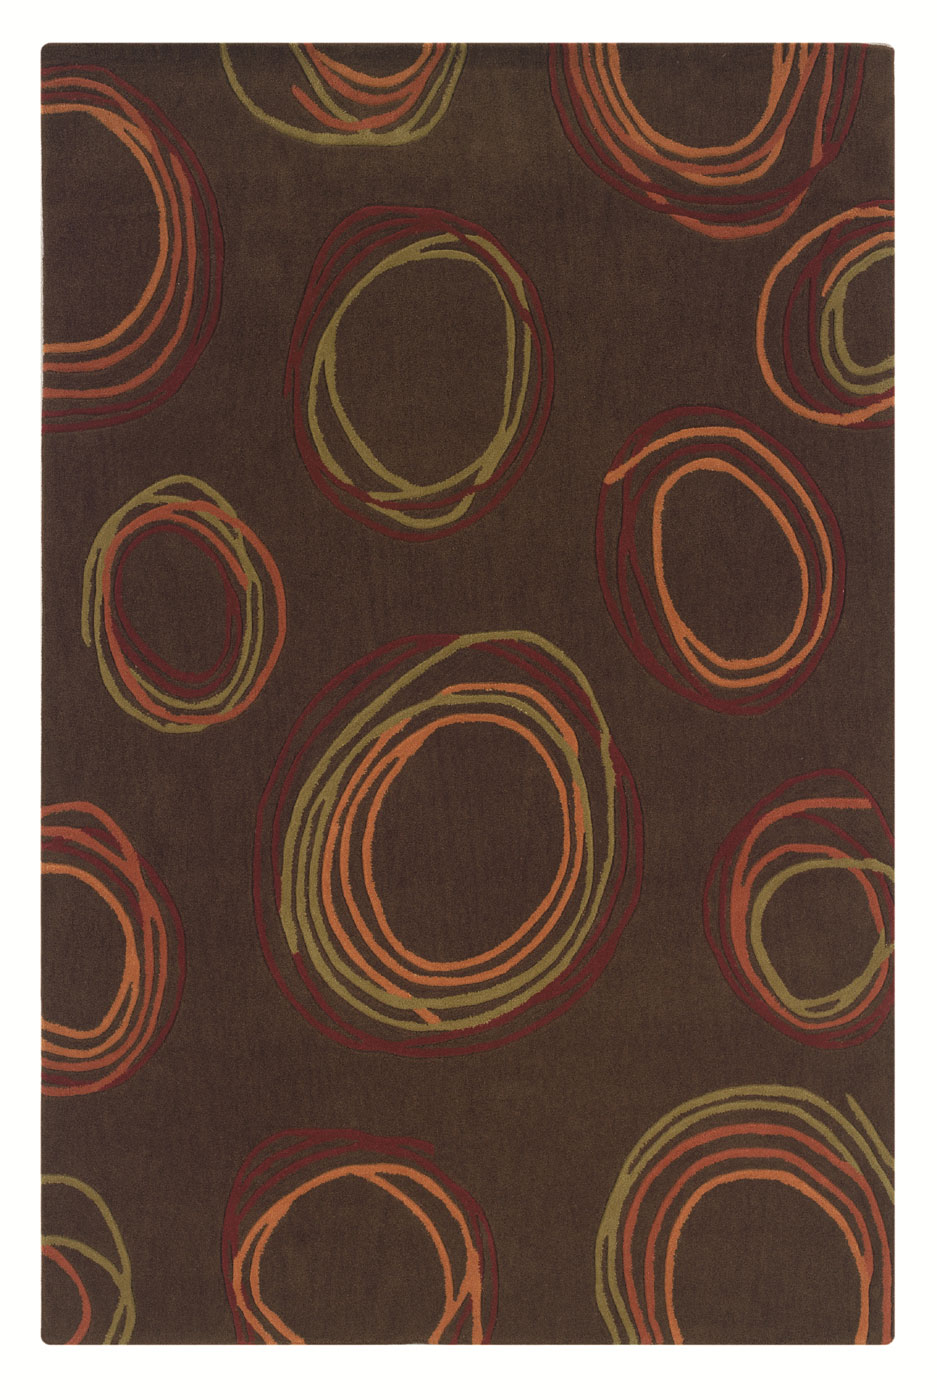 Trio collection rug by linon home decor in accent rugs for Home accents rug collection